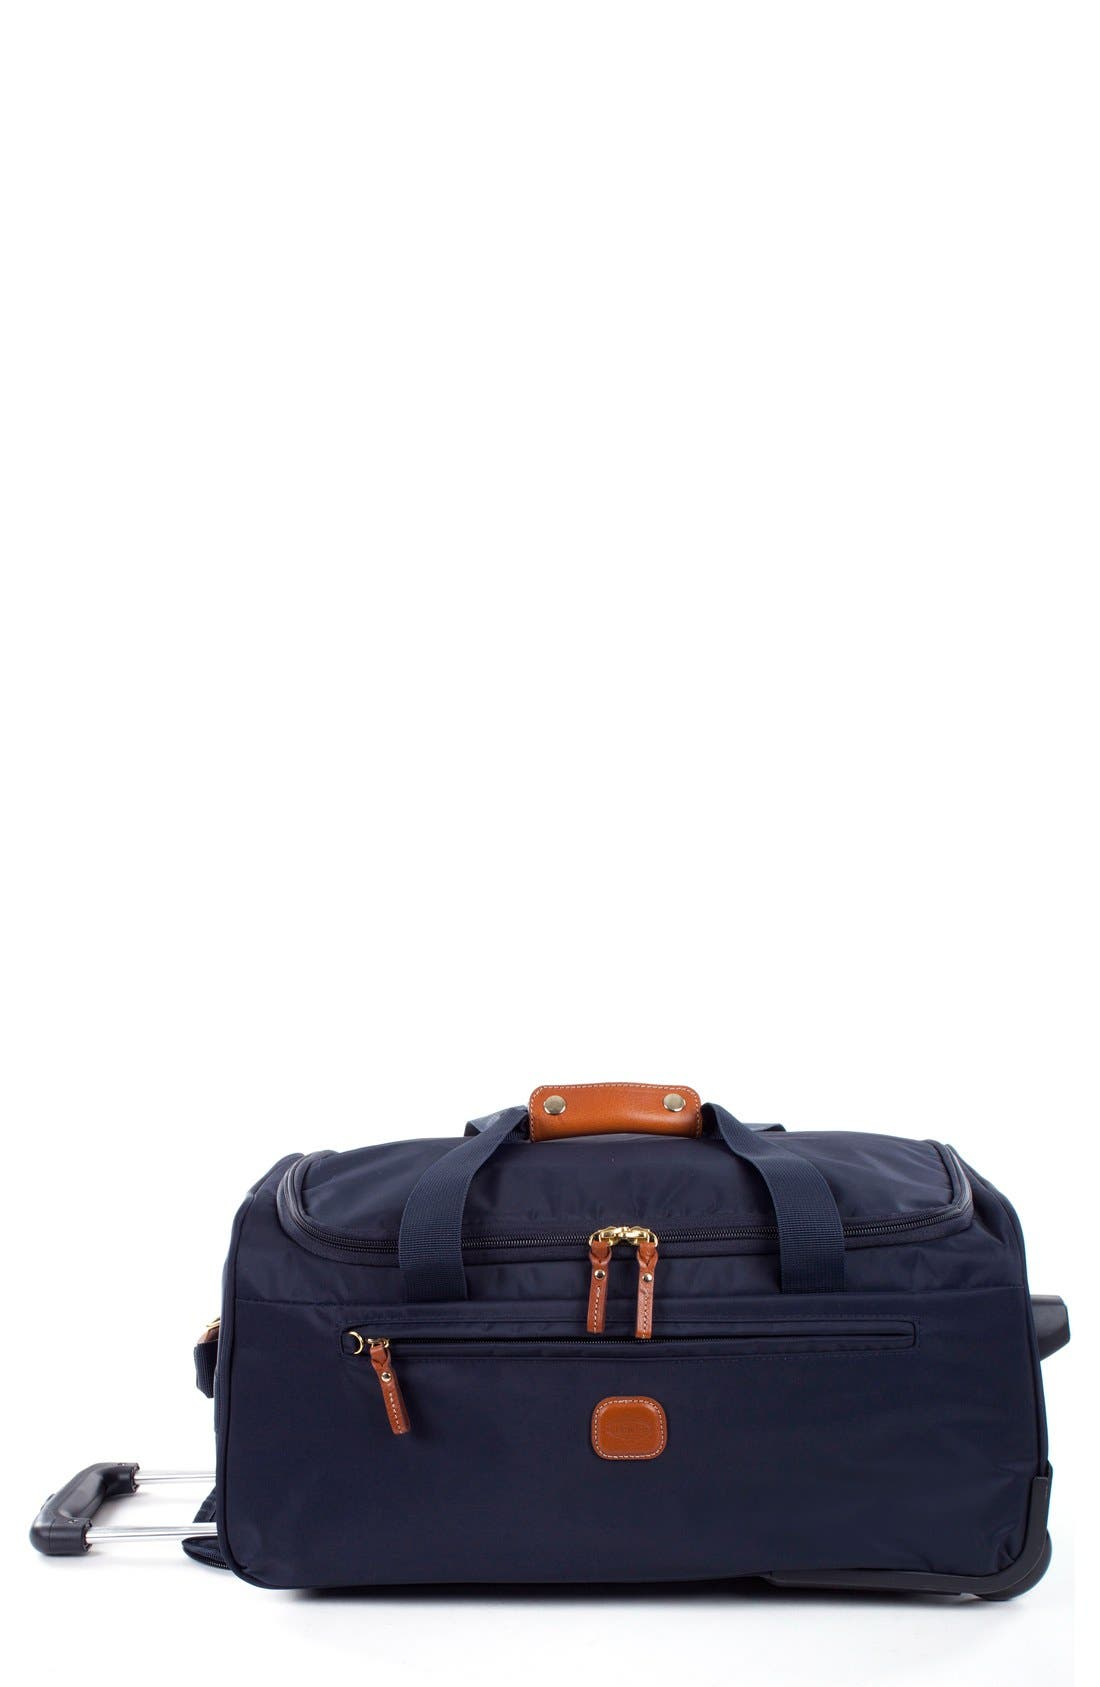 X-Bag 21-Inch Rolling Carry-On Duffel Bag,                         Main,                         color, NAVY